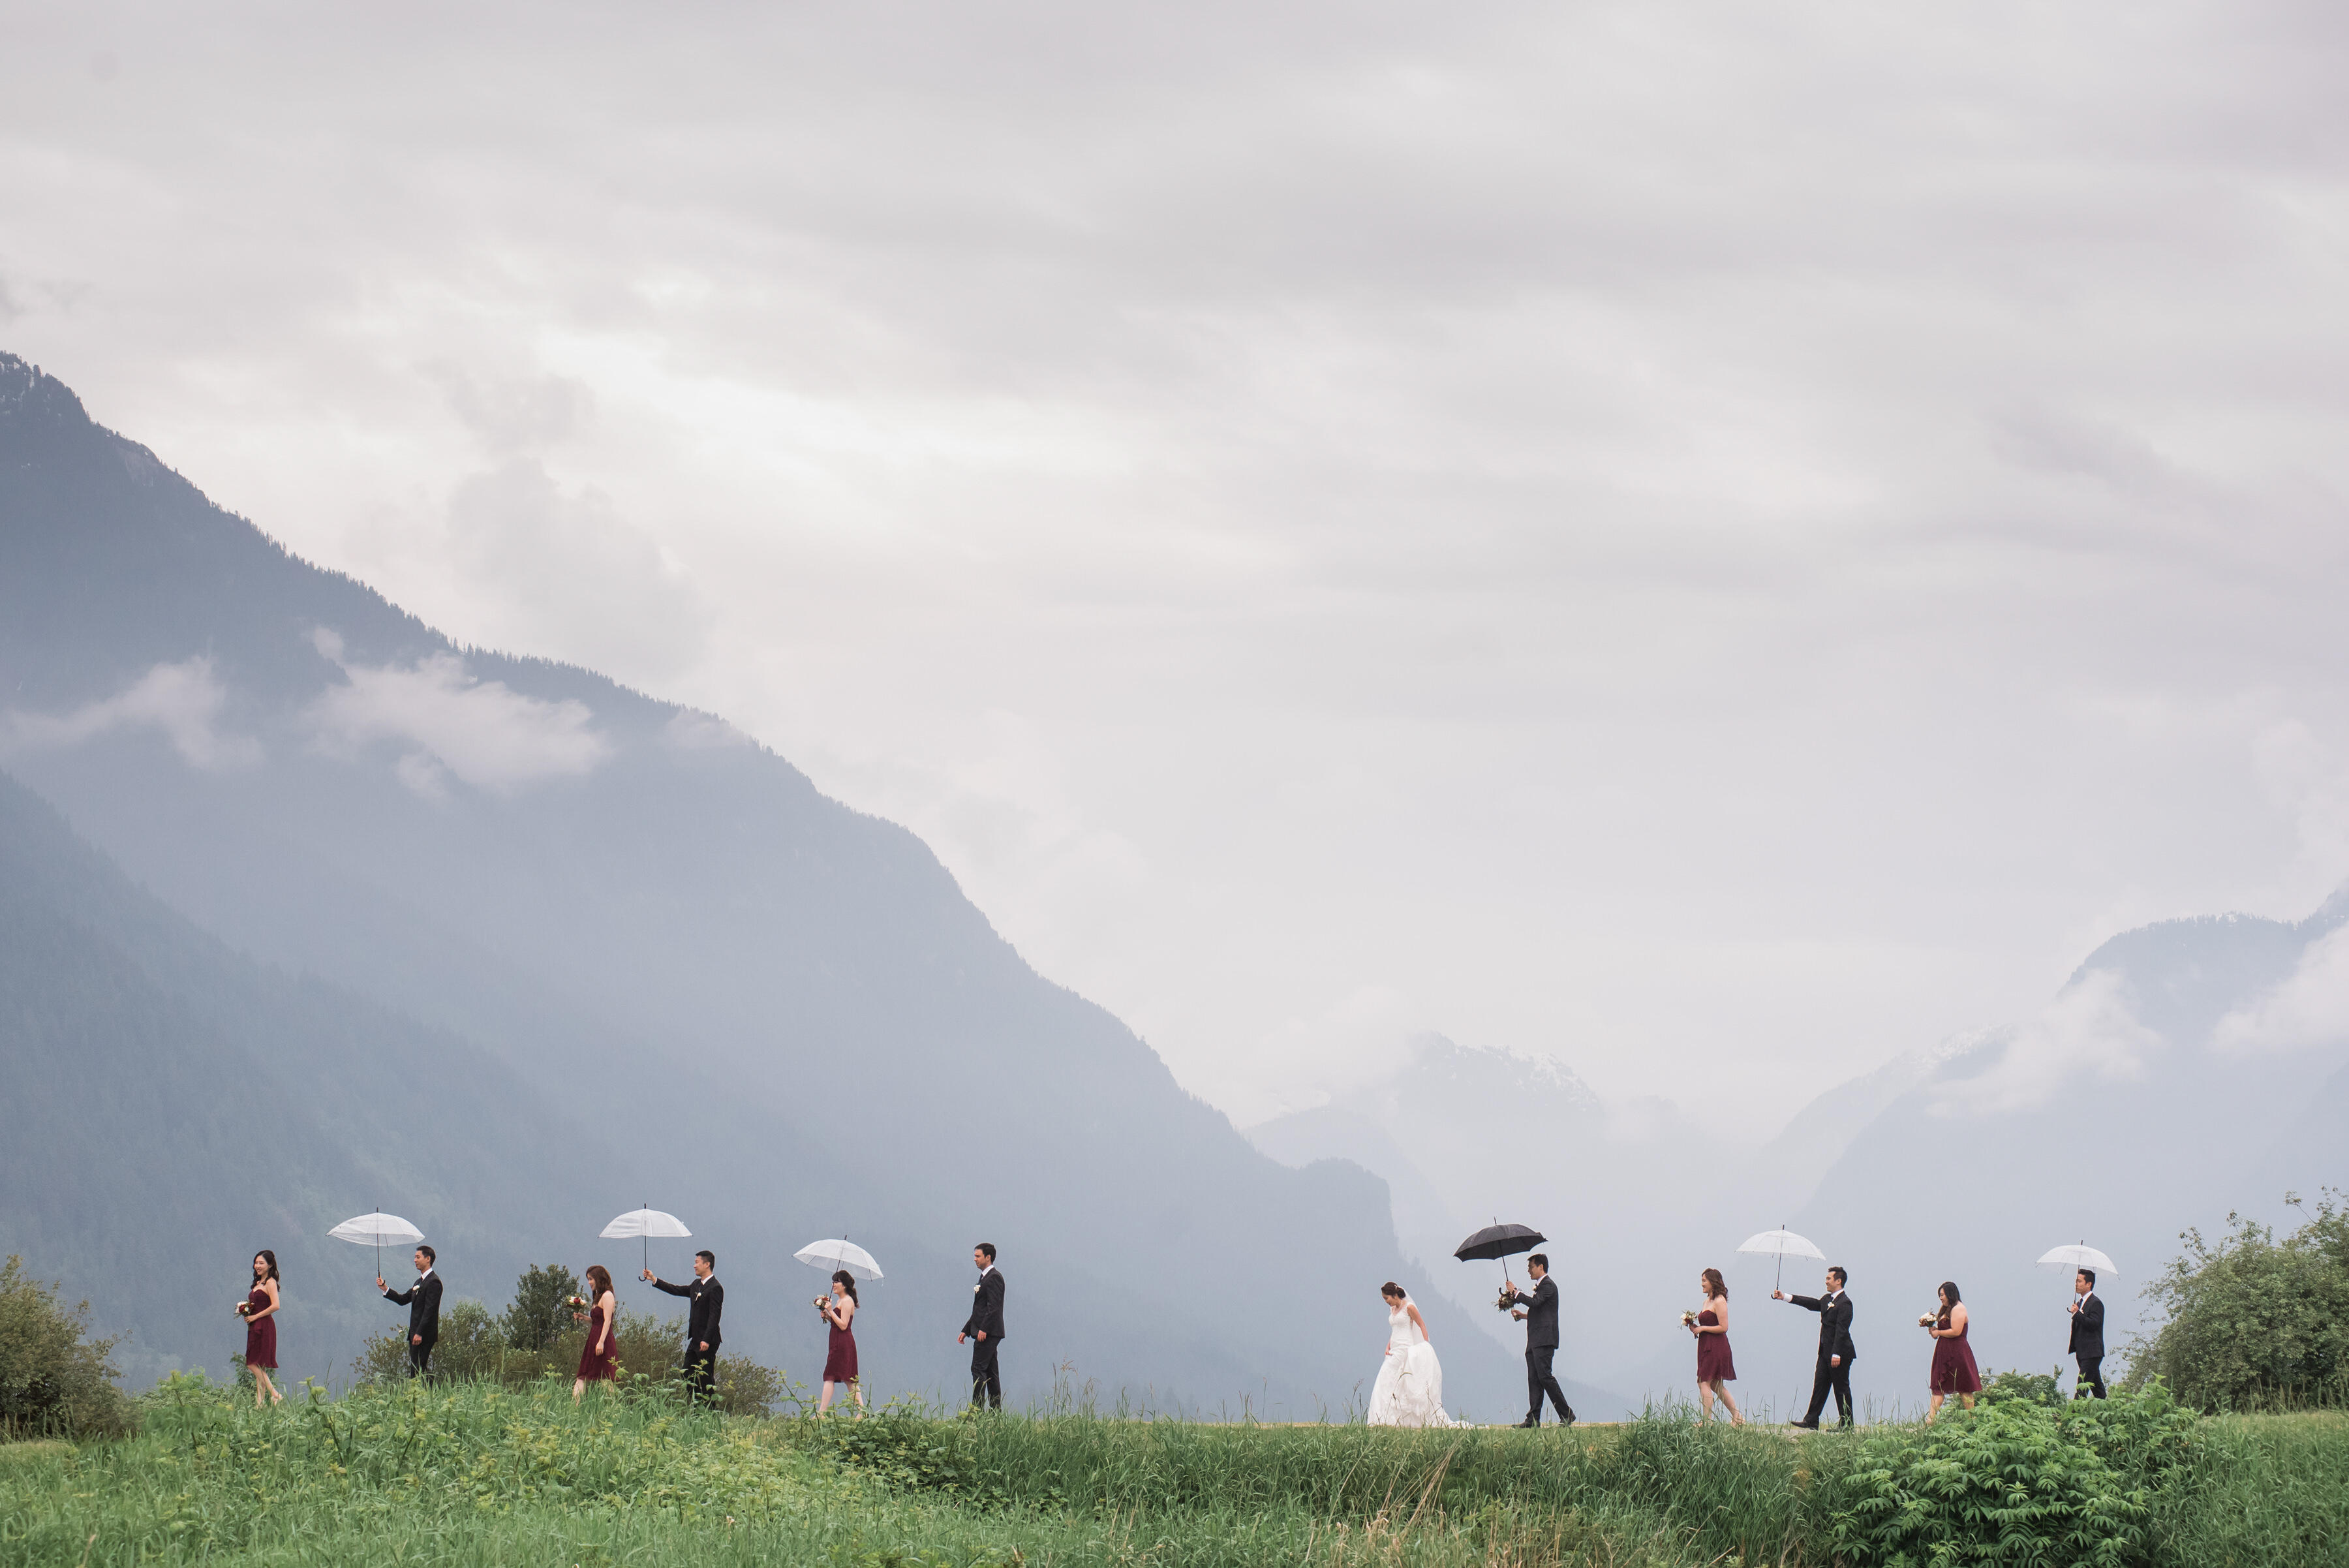 bridal party walking with bride and groom in the rain holding umbrellas